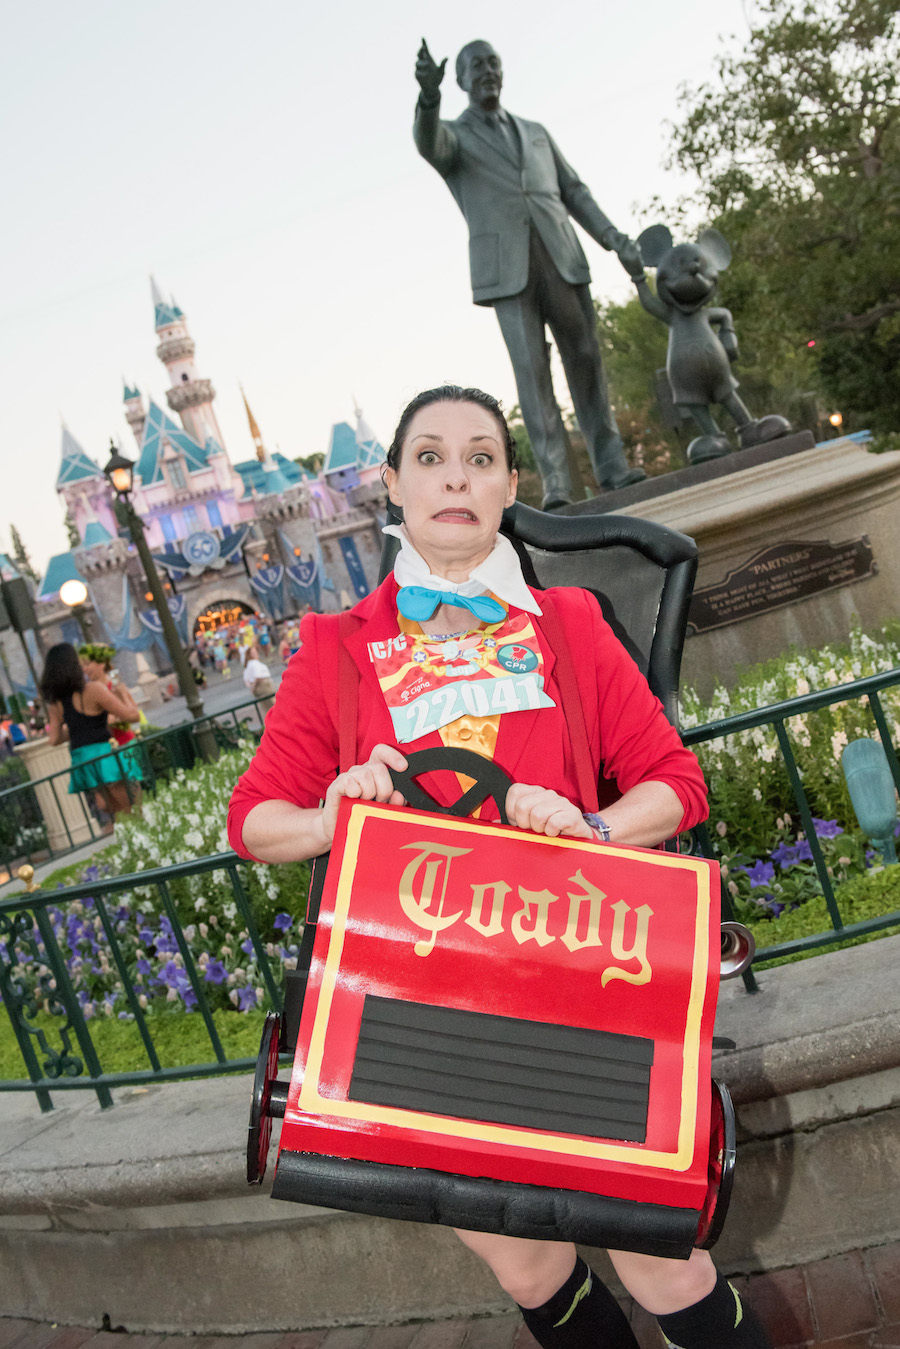 Runners Showed Their Diamond Disney Style During Disneyland Half Marathon Weekend at the Disneyland Resort